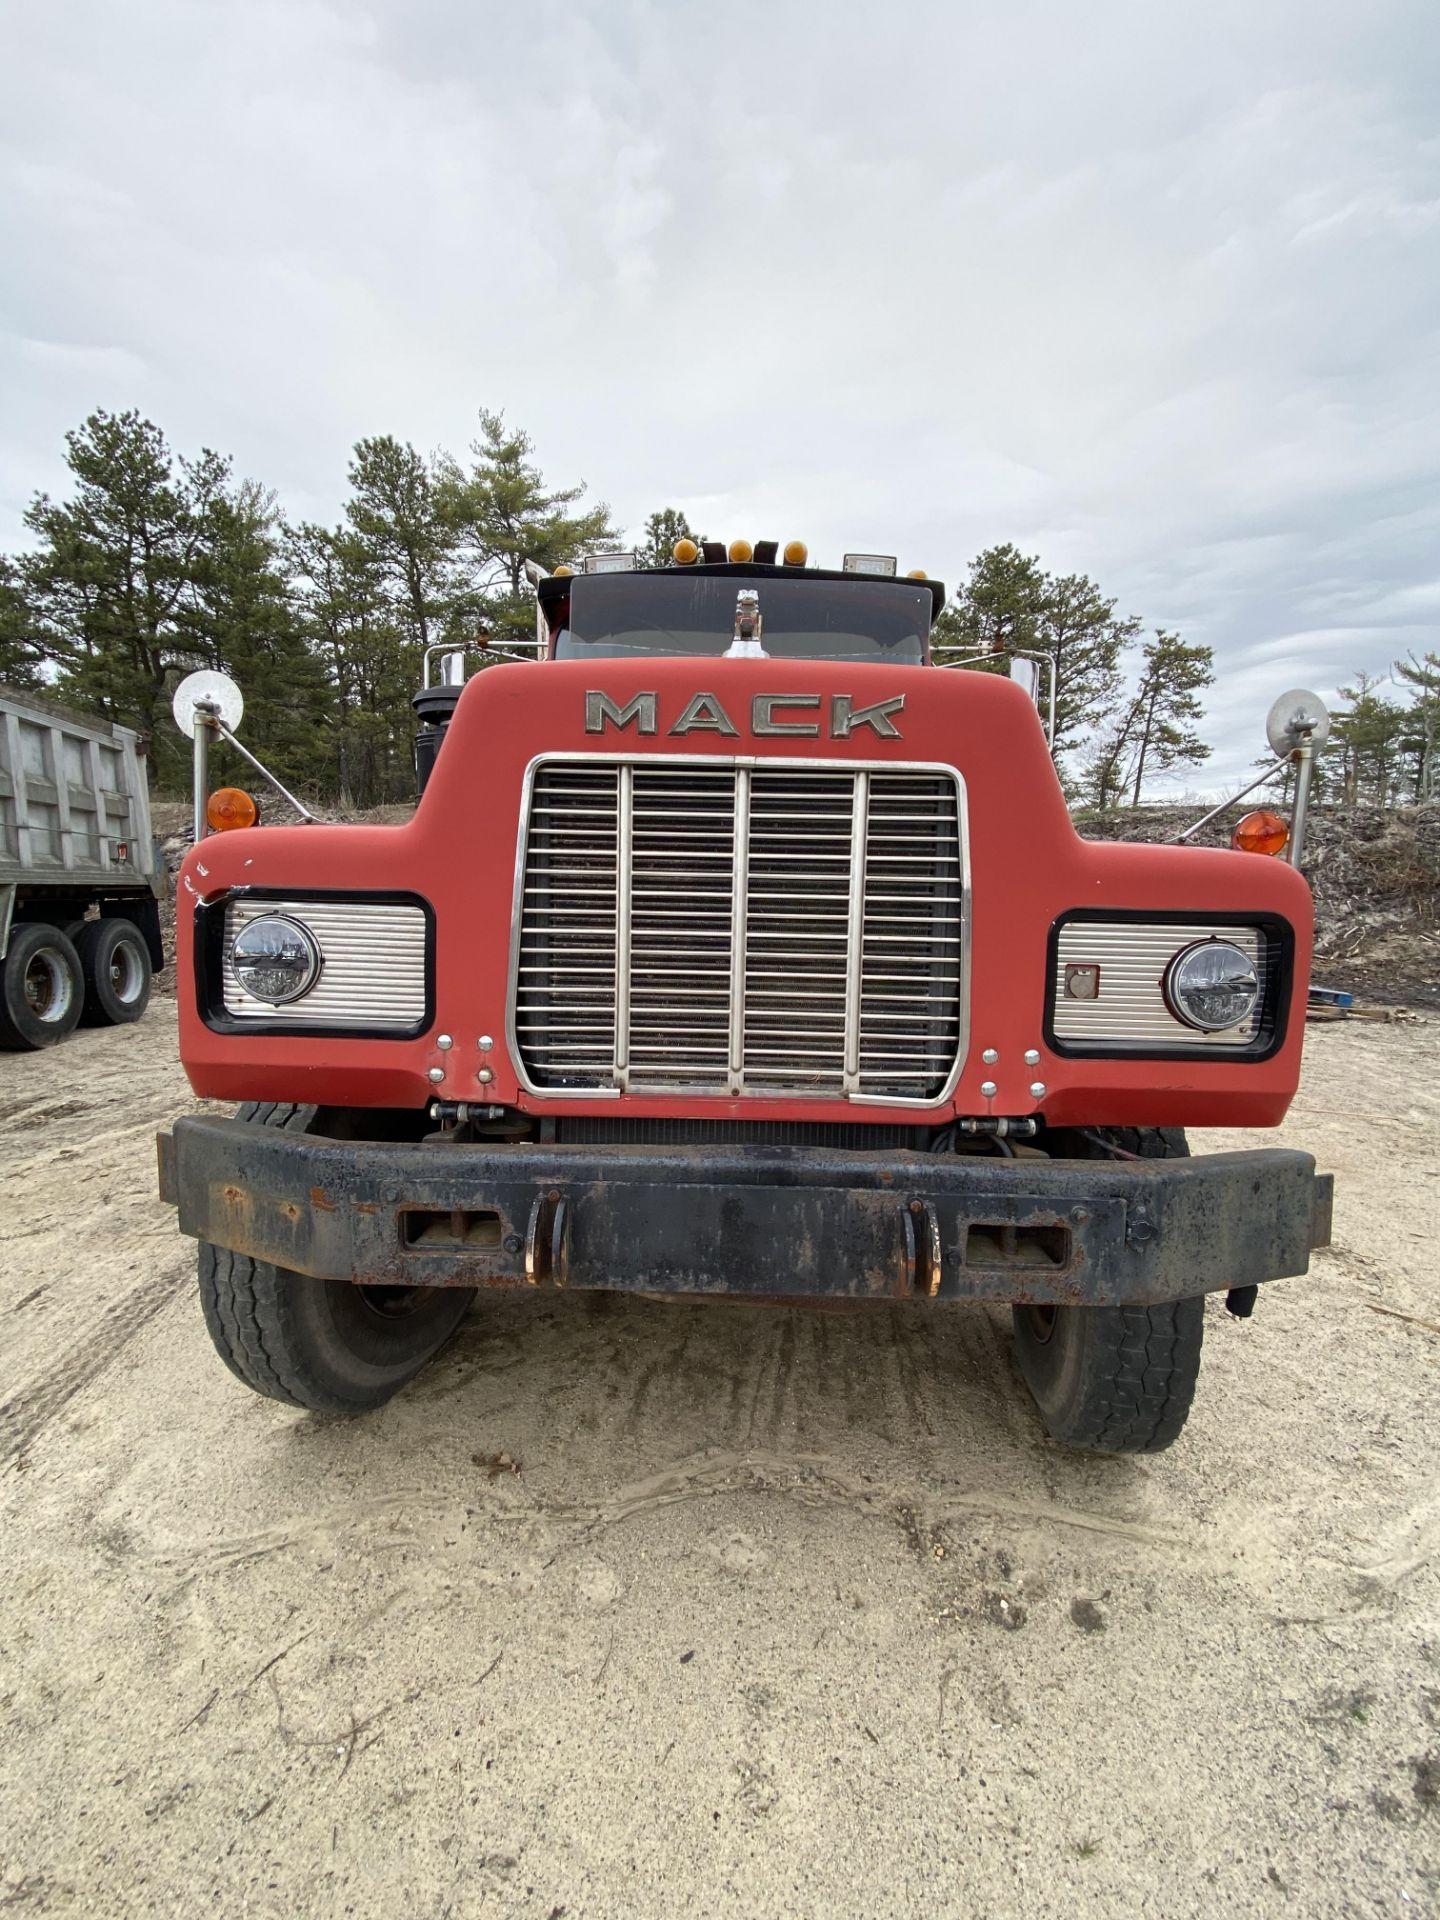 1986 Mack RD688SX Tandem Axle Tractor VIN 1M2P143Y8GA004351, Meter Reads 301,625 Miles, Day Cab, - Image 11 of 22